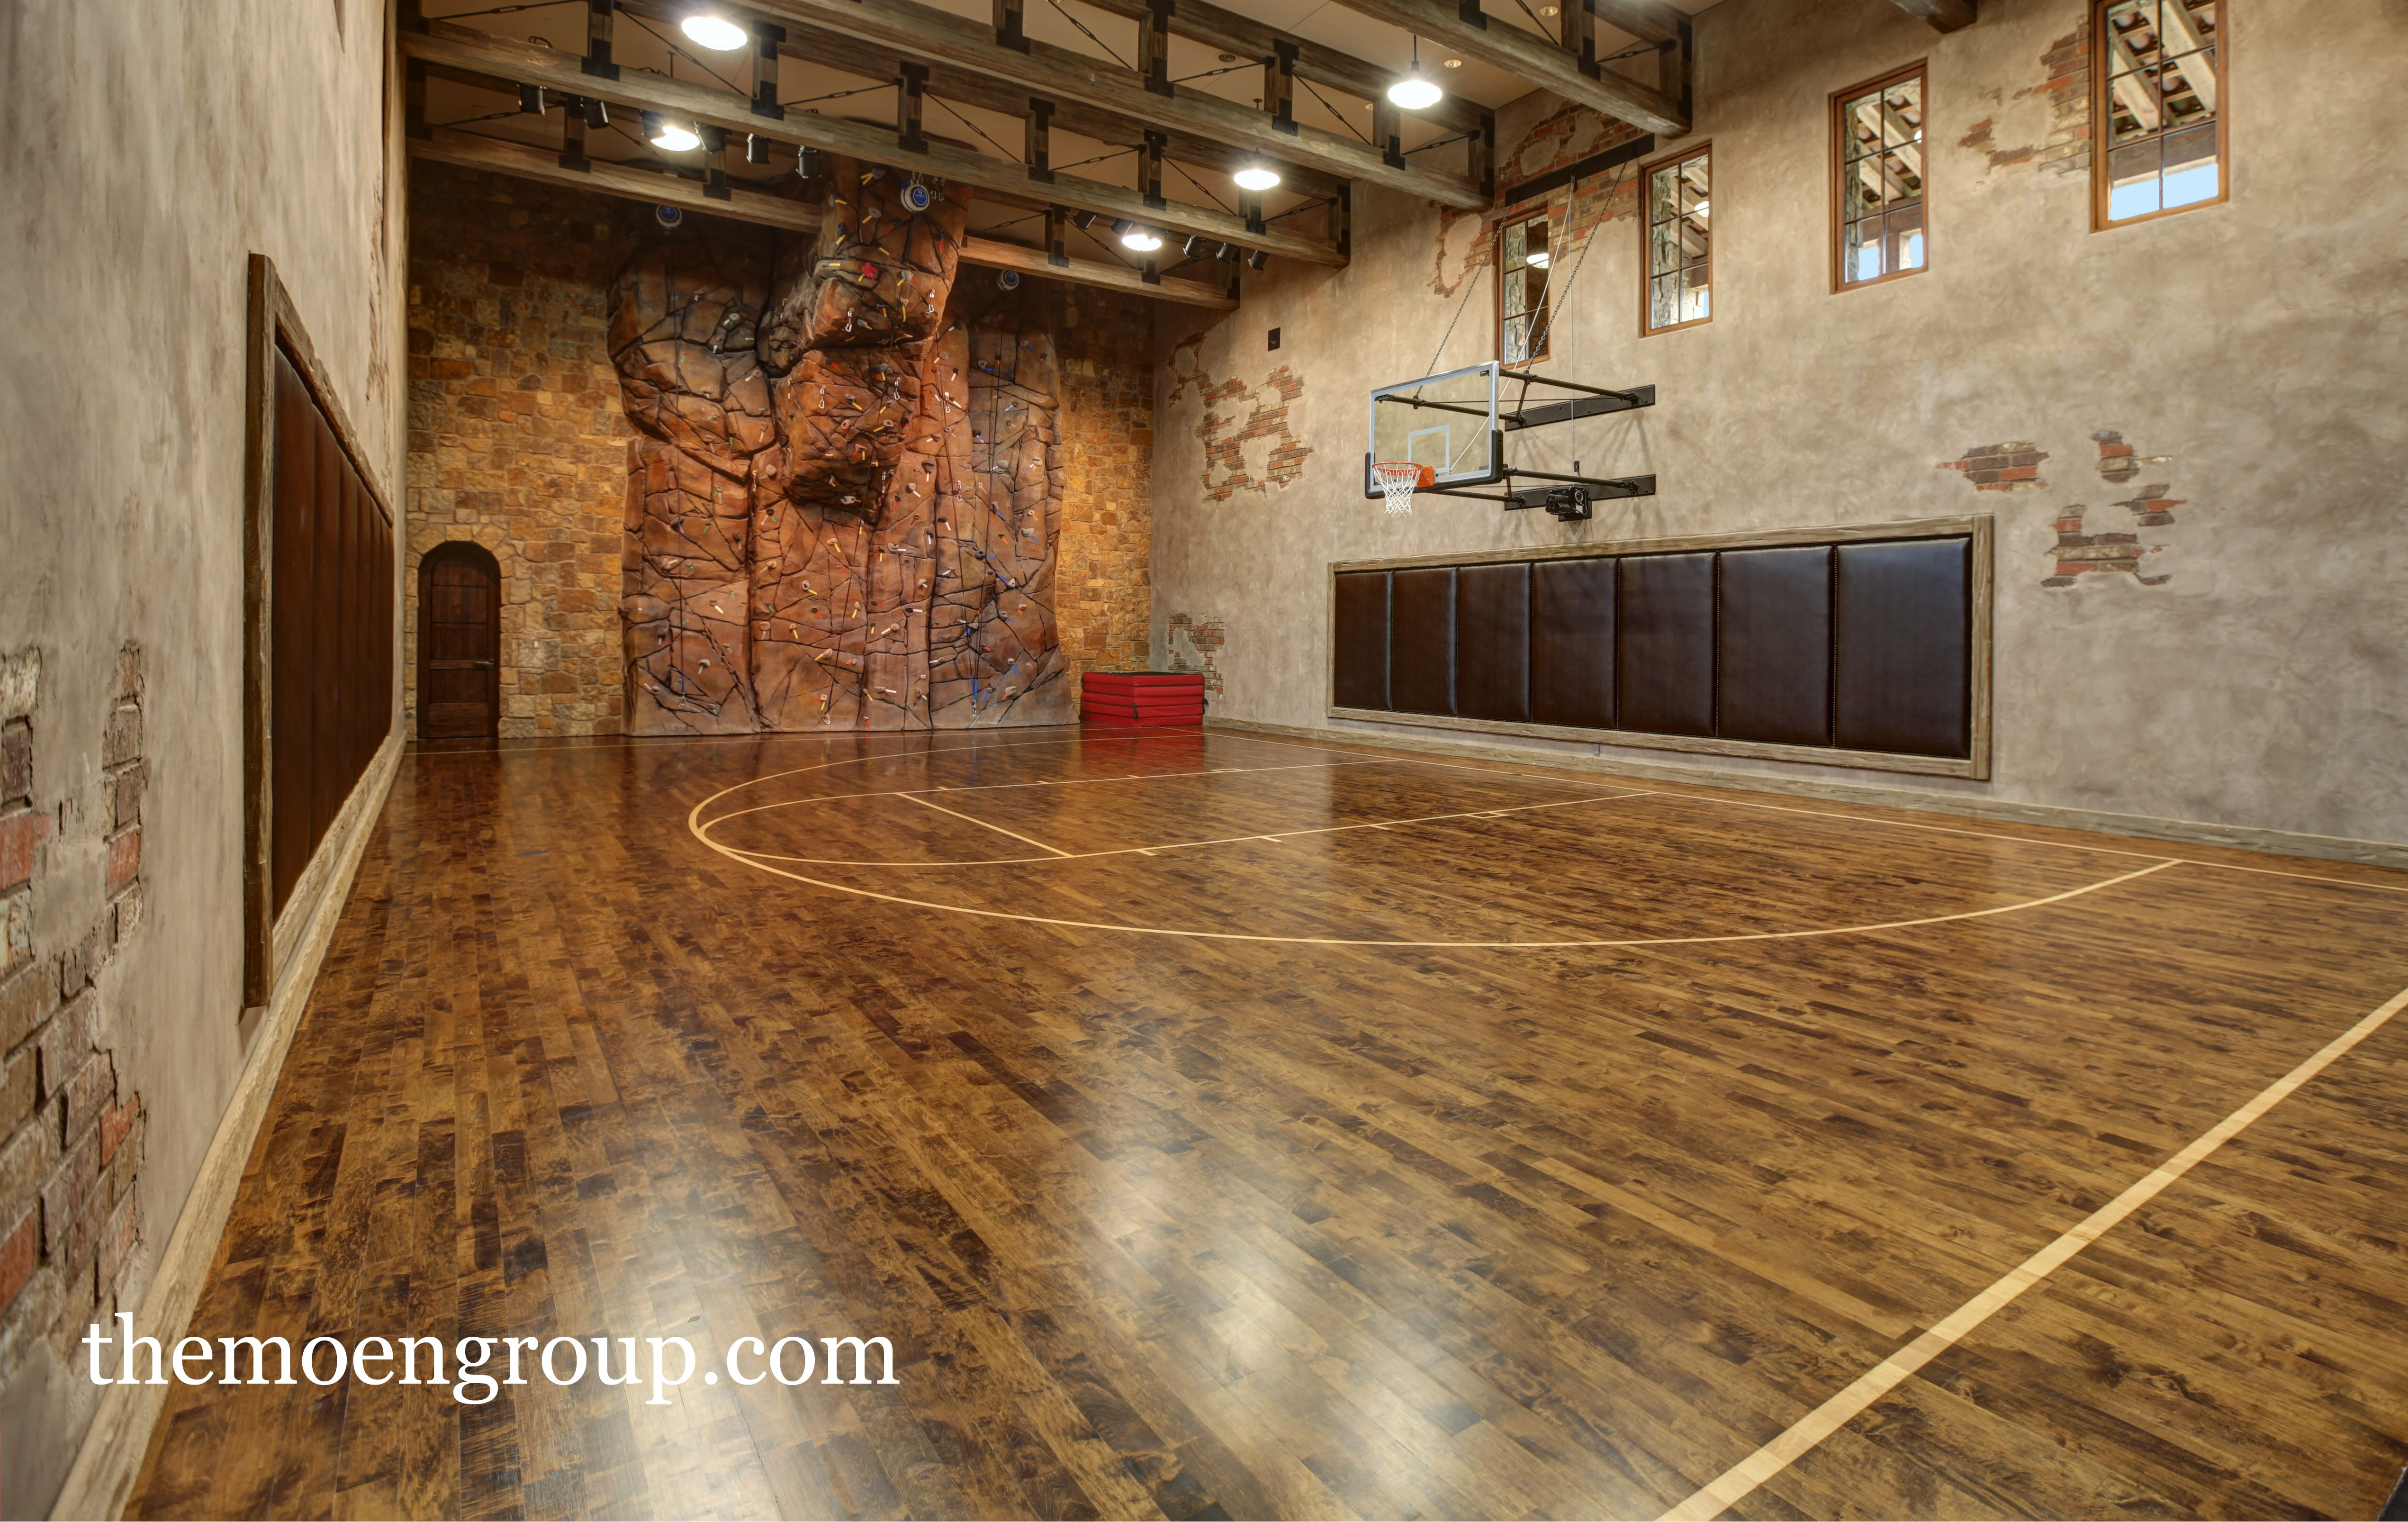 Sophisticated Basketball Court In House